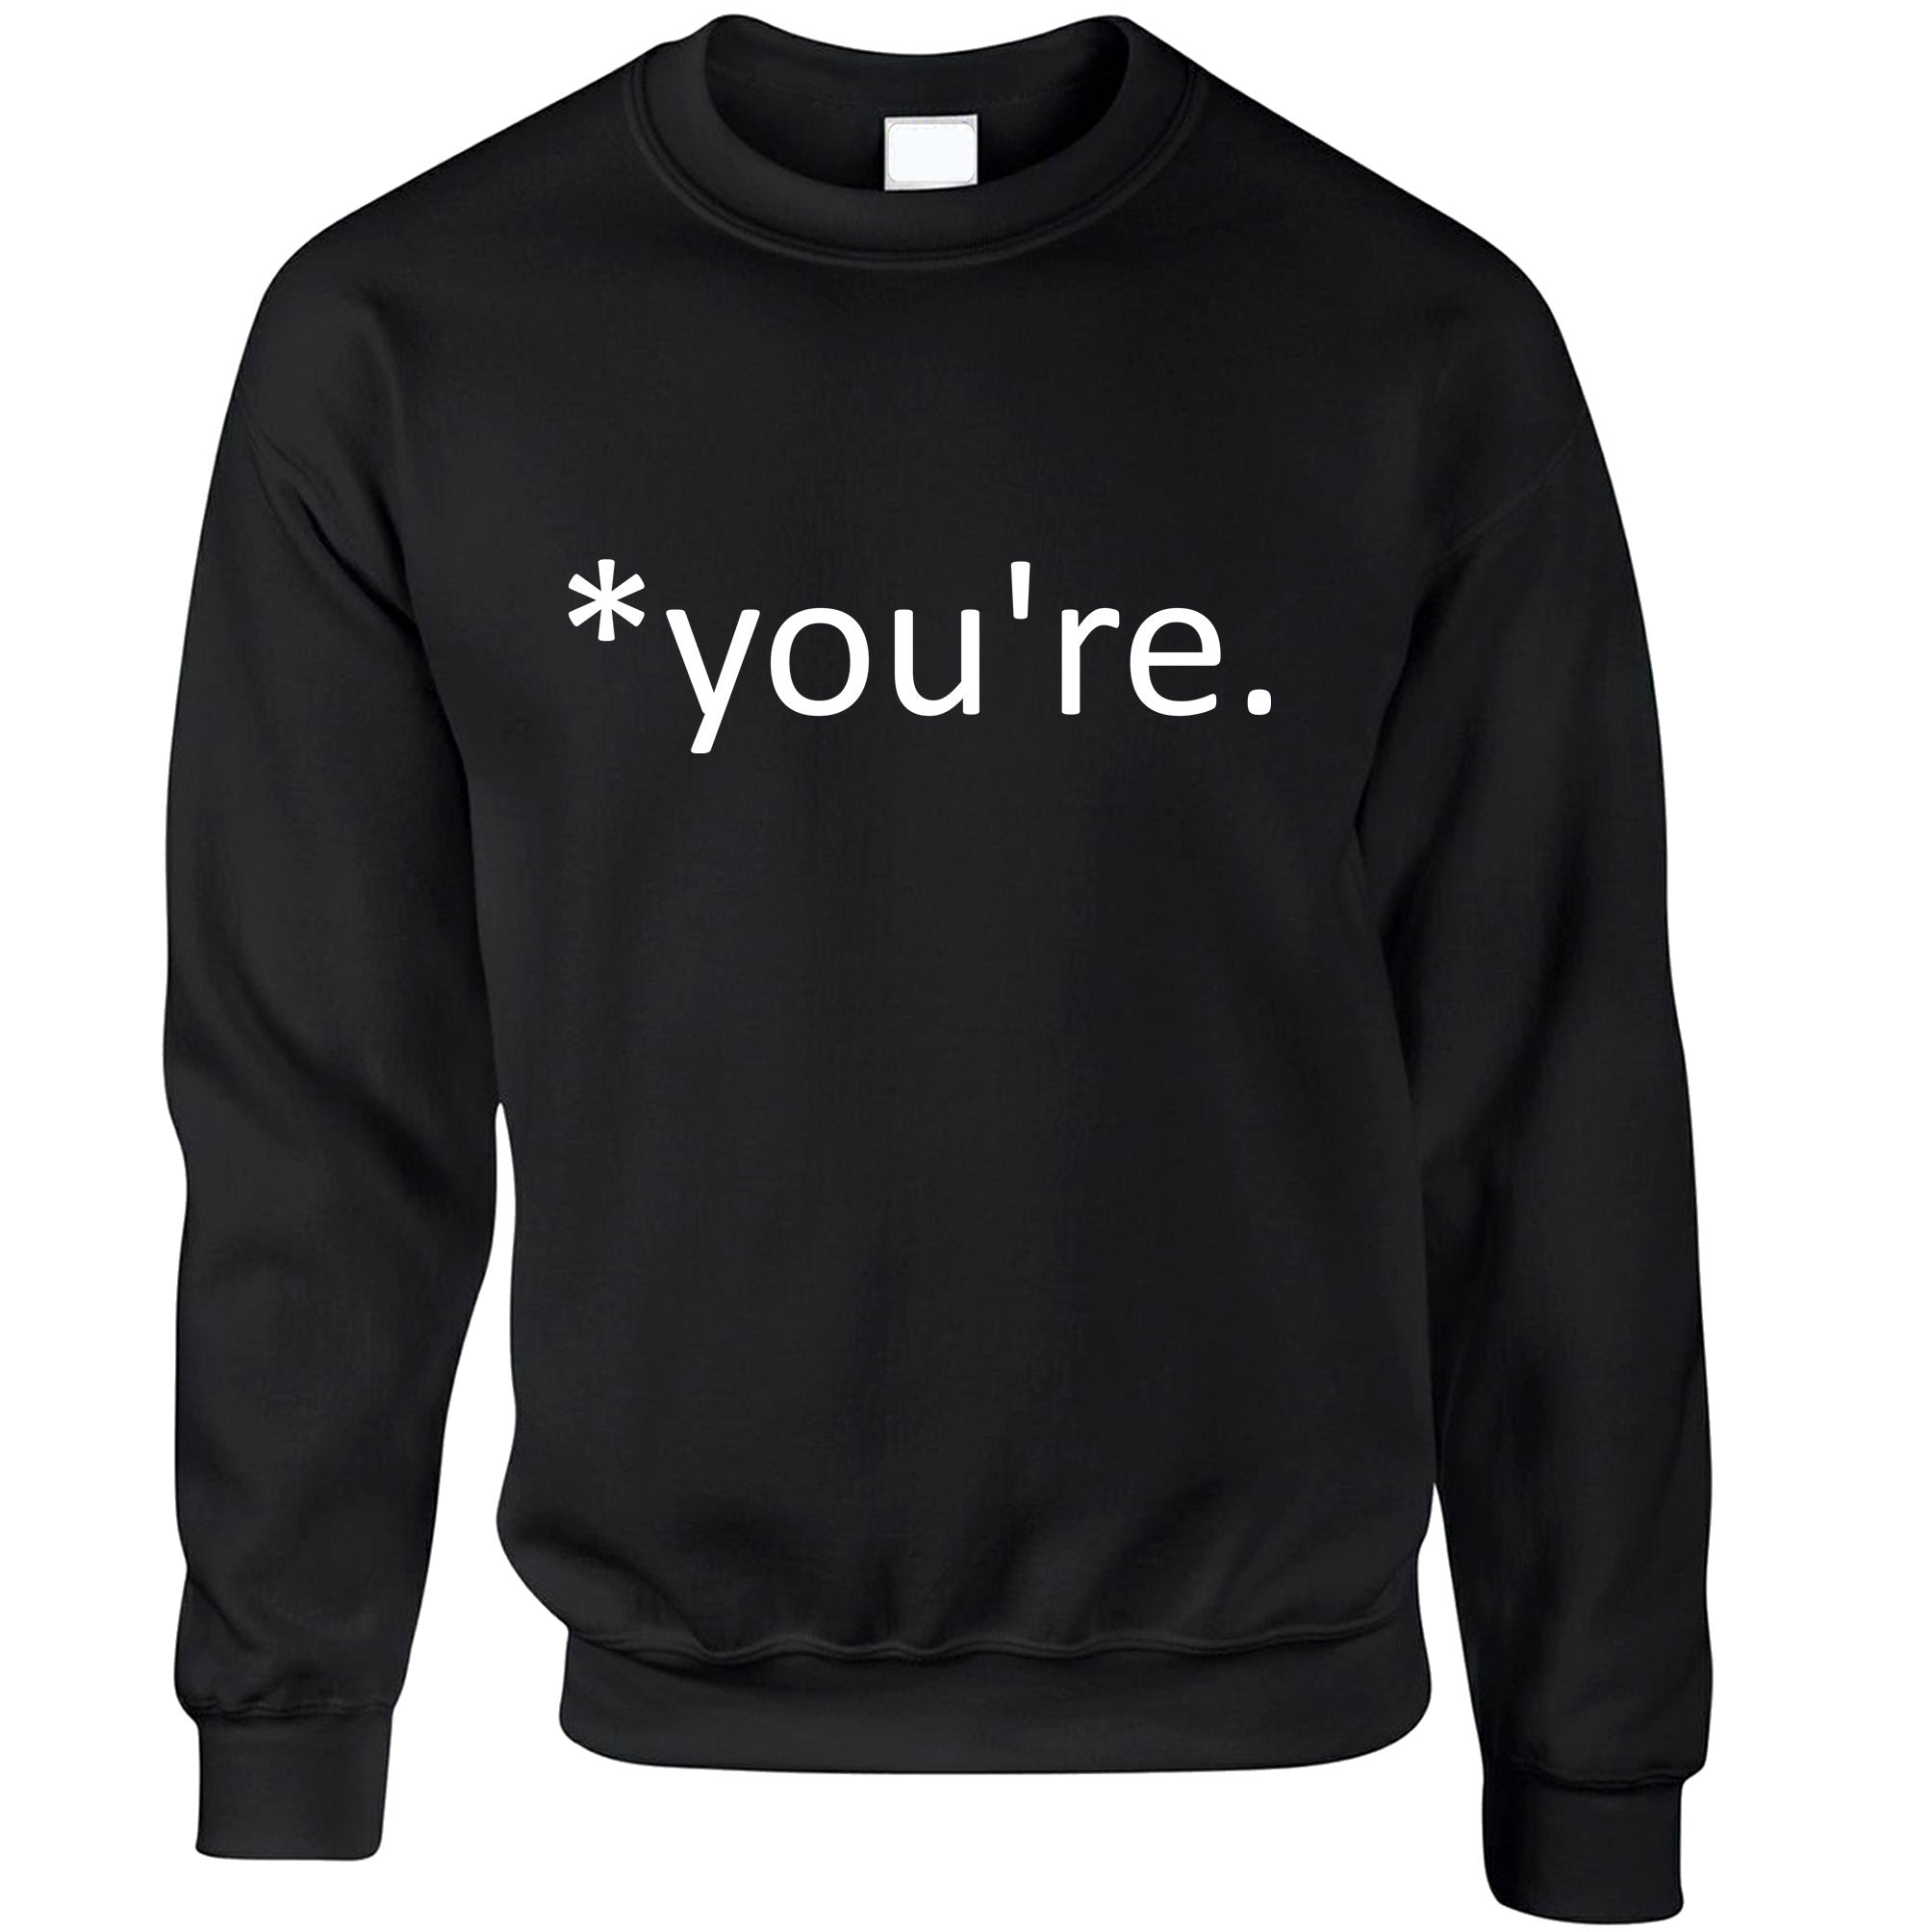 Correction of the Proper 'You're' Funny Jumper Joke Sweatshirt Sweater